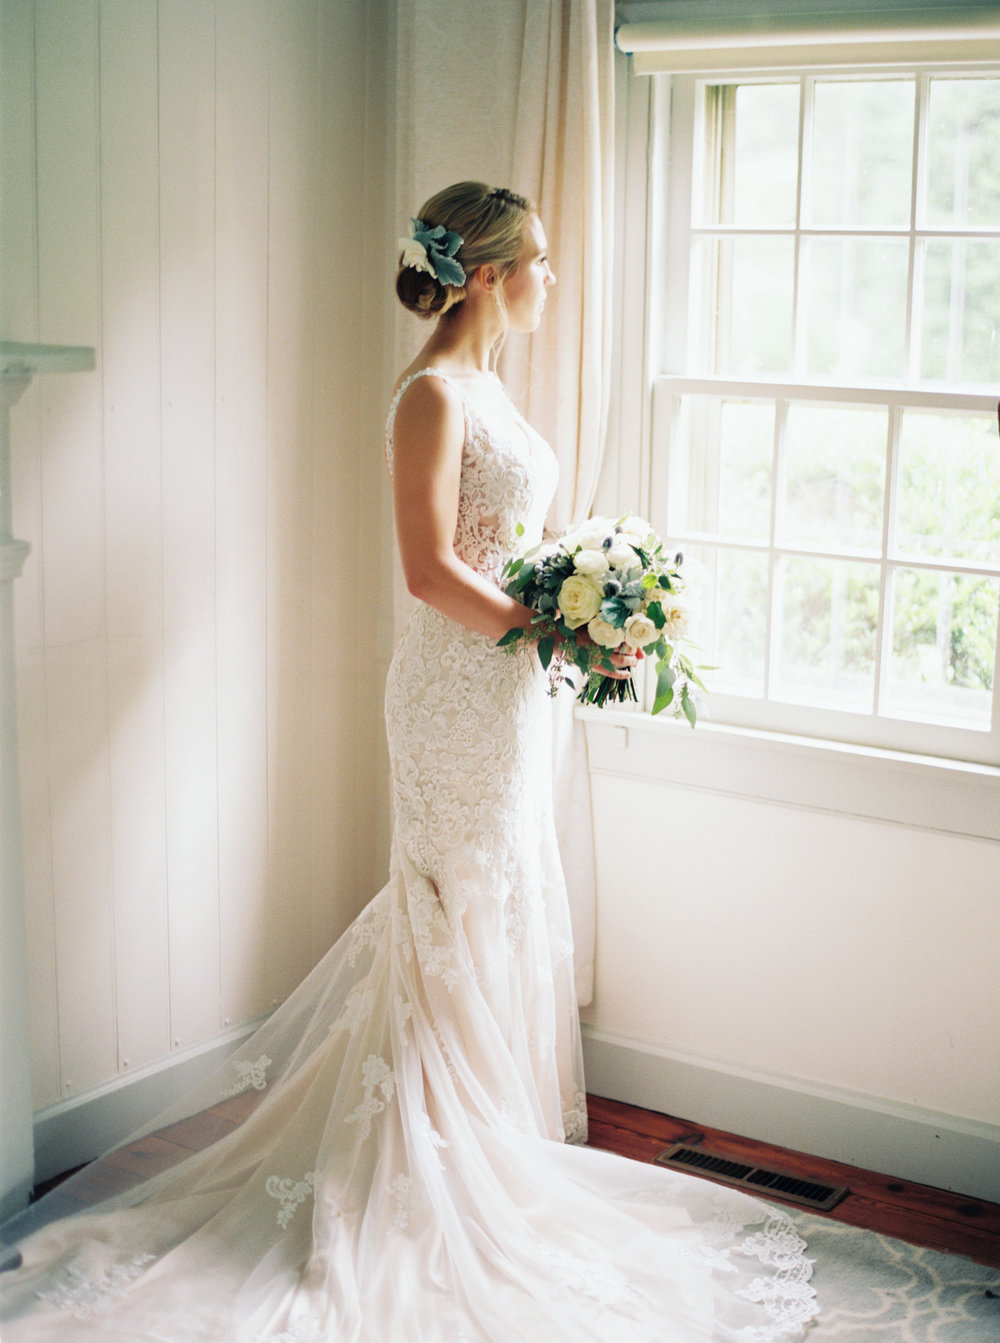 Photographers love wedding venues with natural light for stunning photographs.